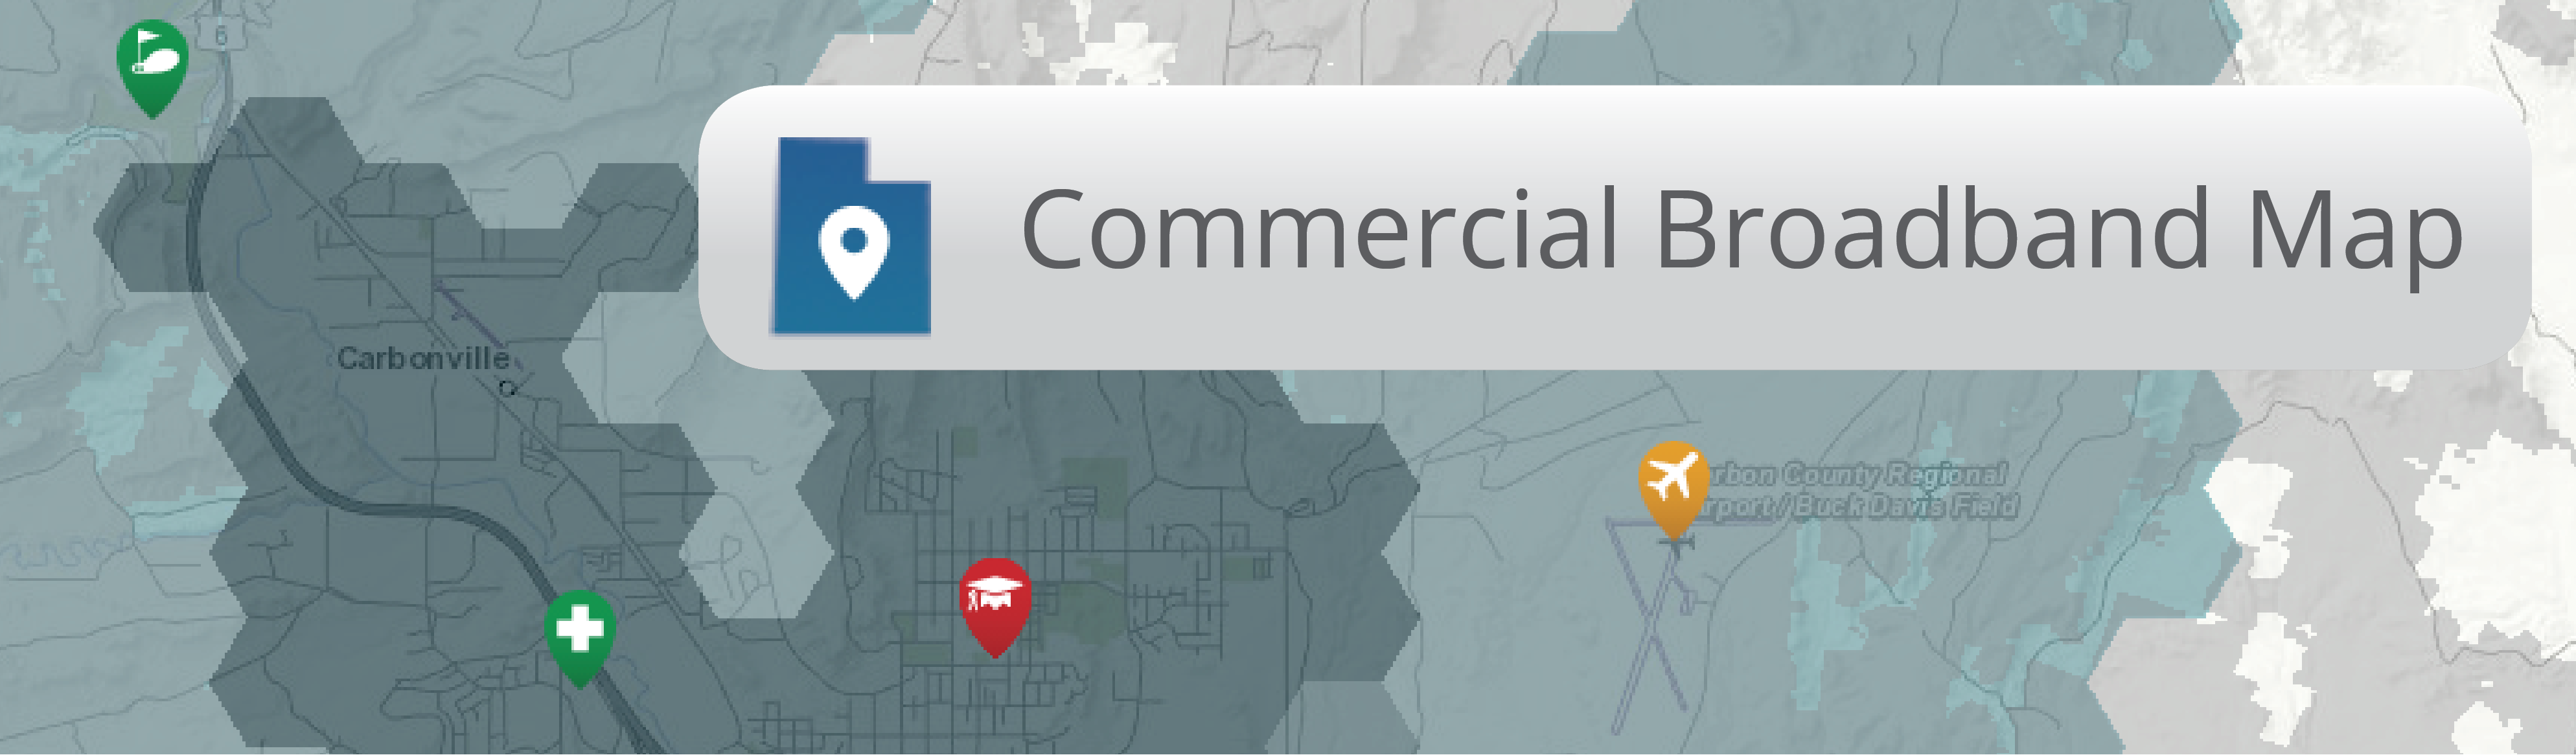 View the Commercial Broadband Map